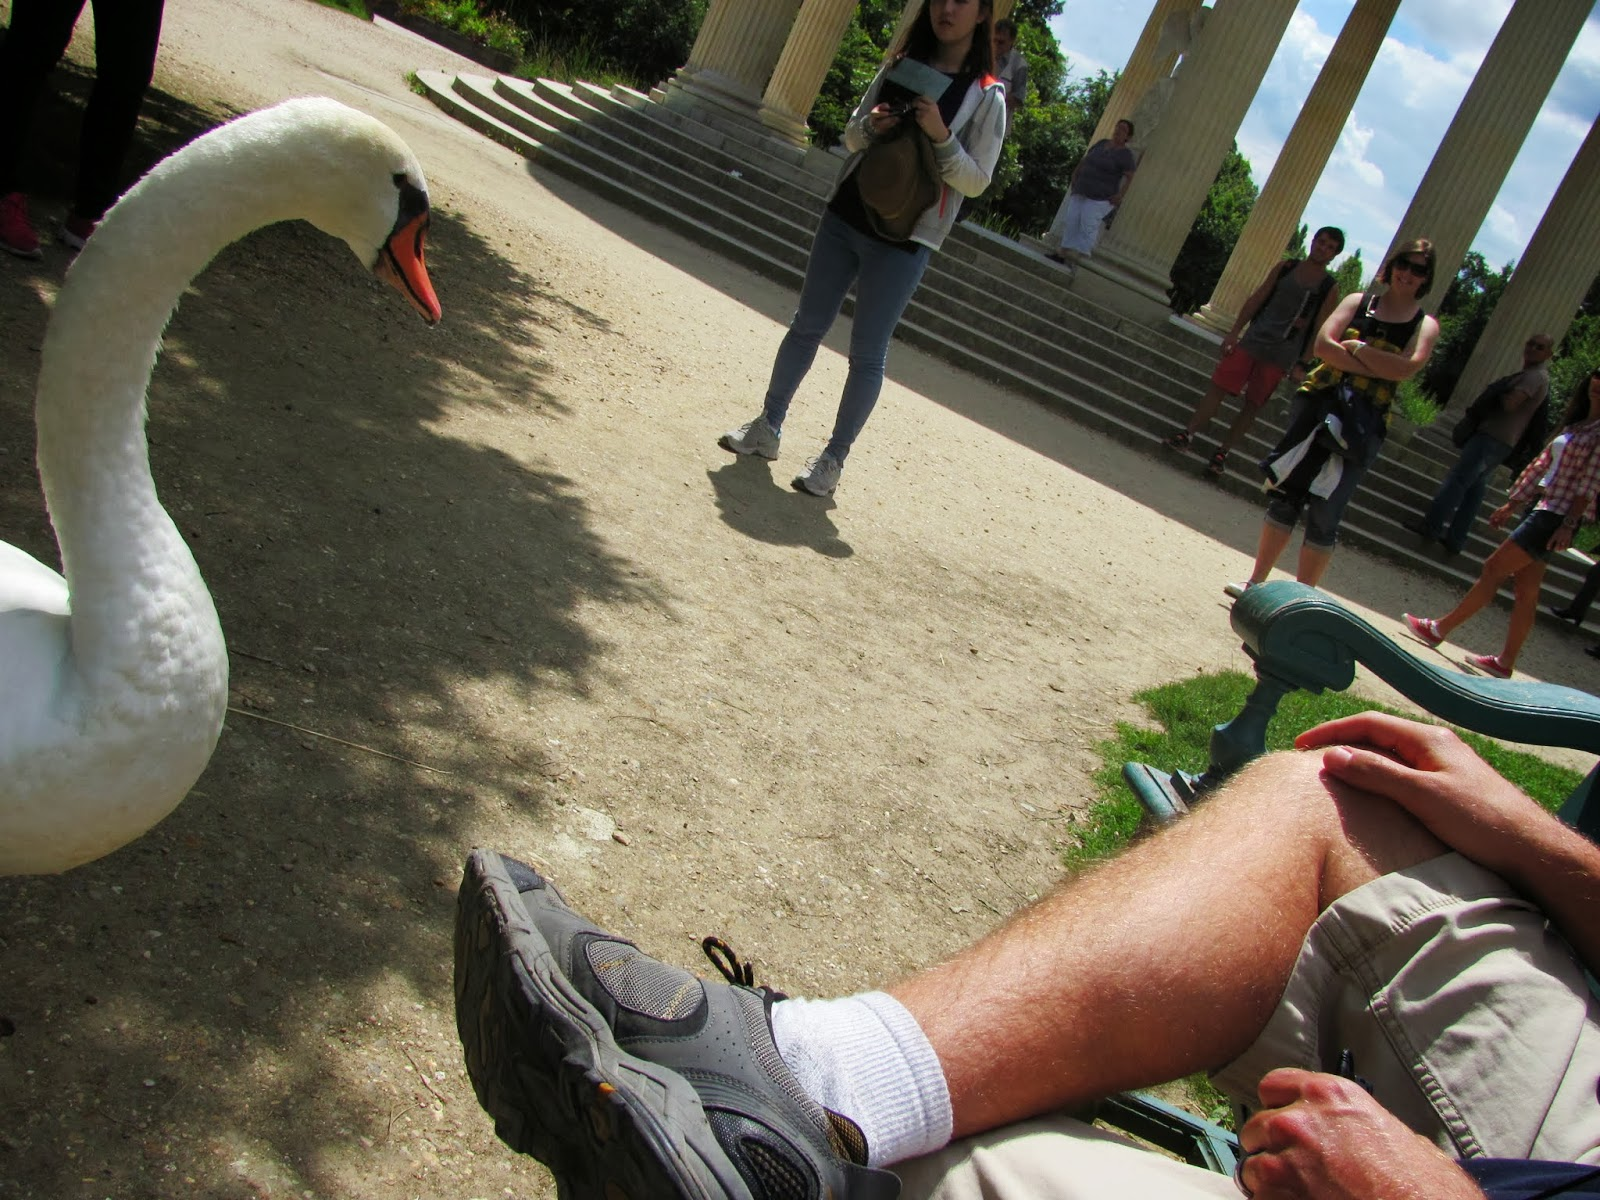 A swan prepares to attack Cory in France